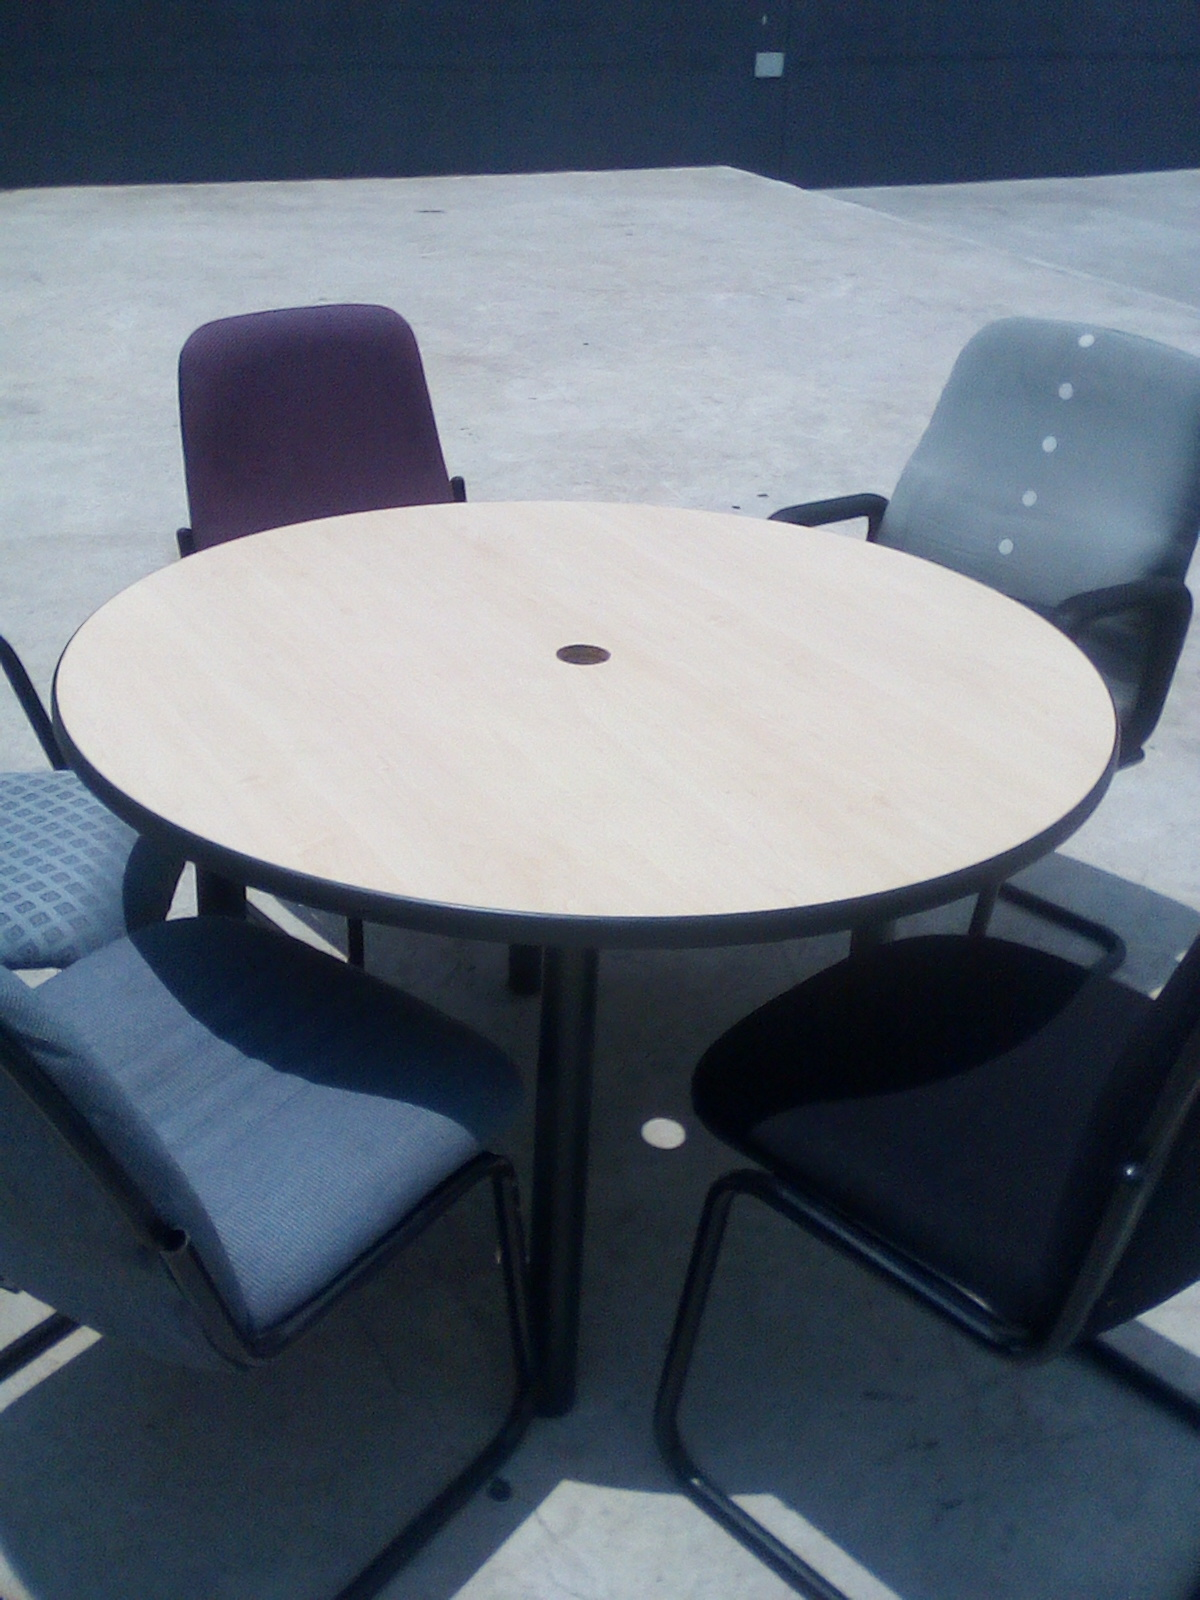 Boardroom table with 5 chairs